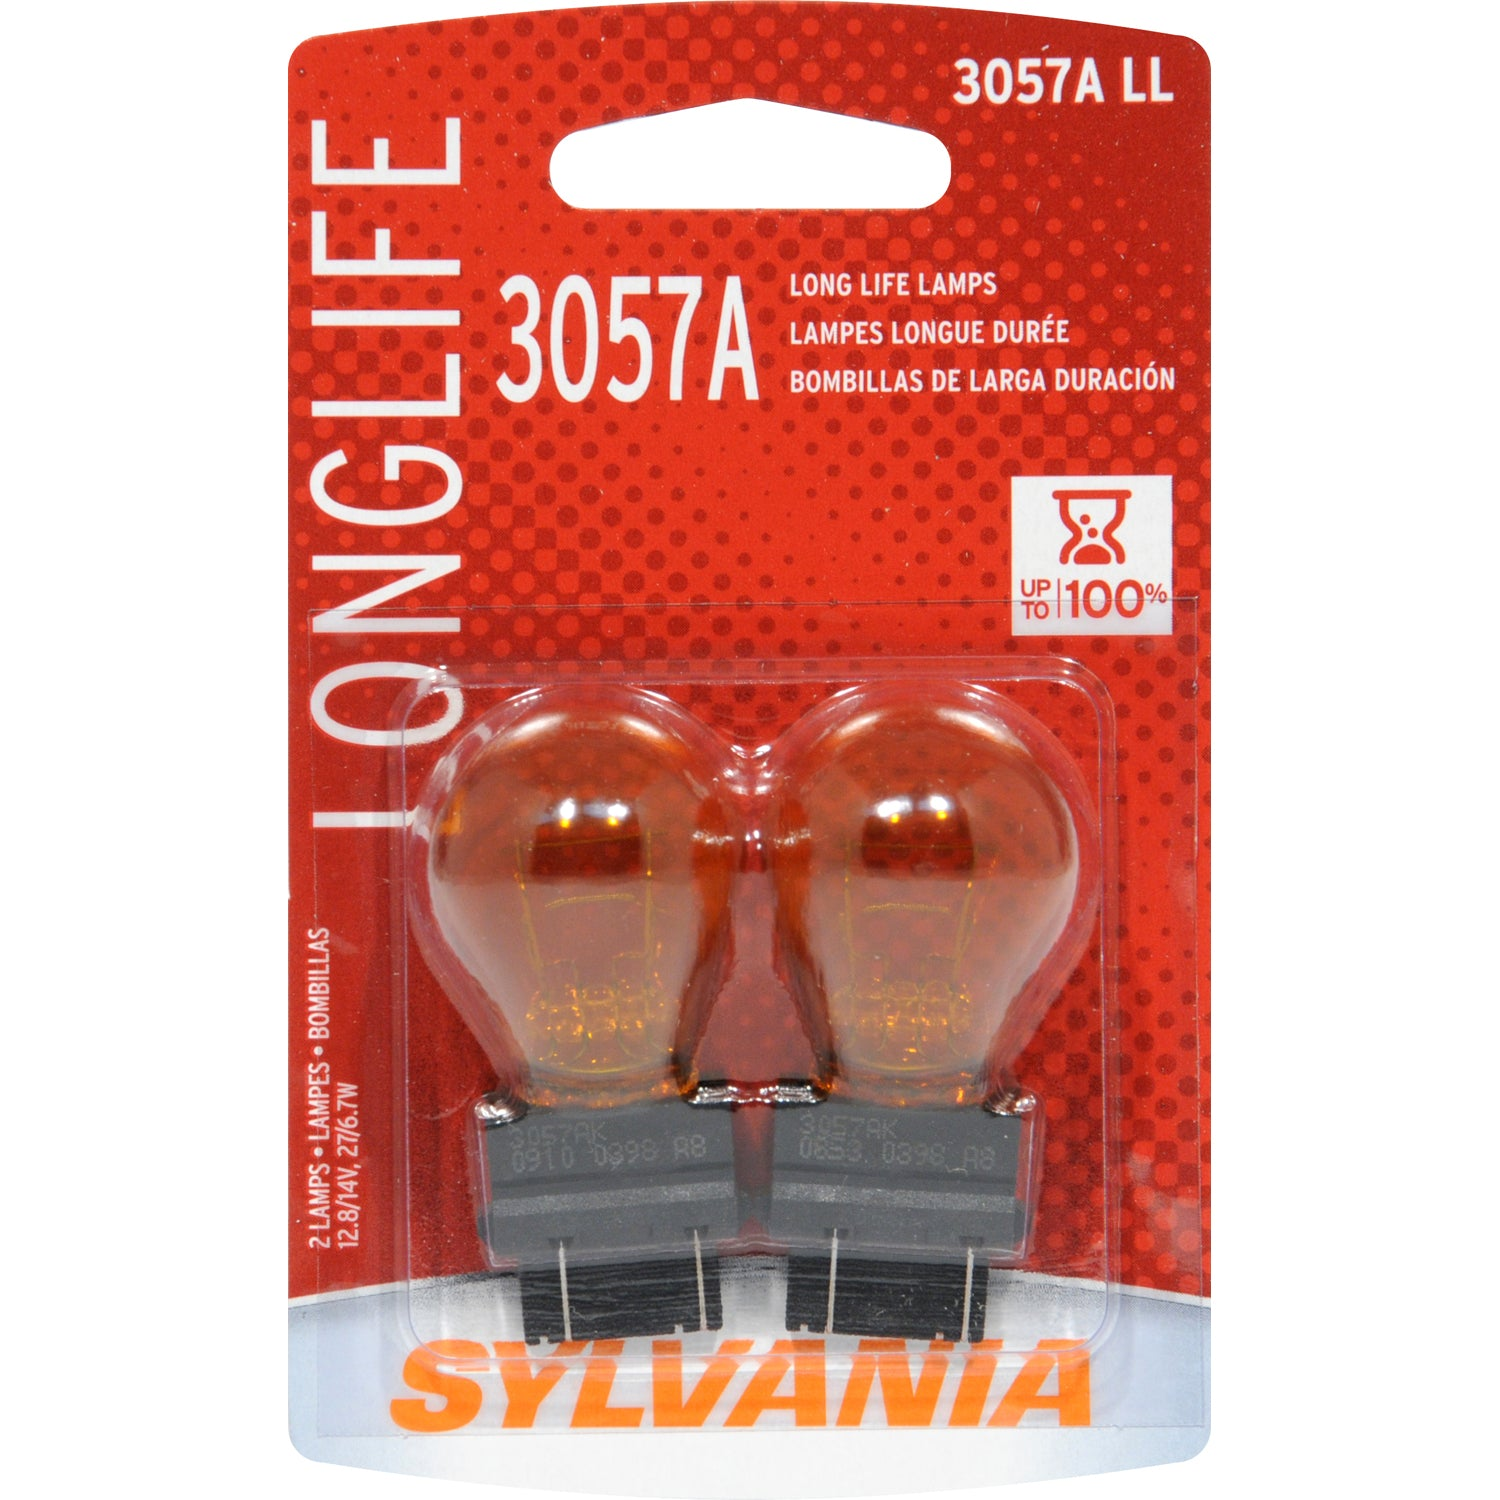 2-PK SYLVANIA 3057A Miniature Incandescent Long Life Bulb